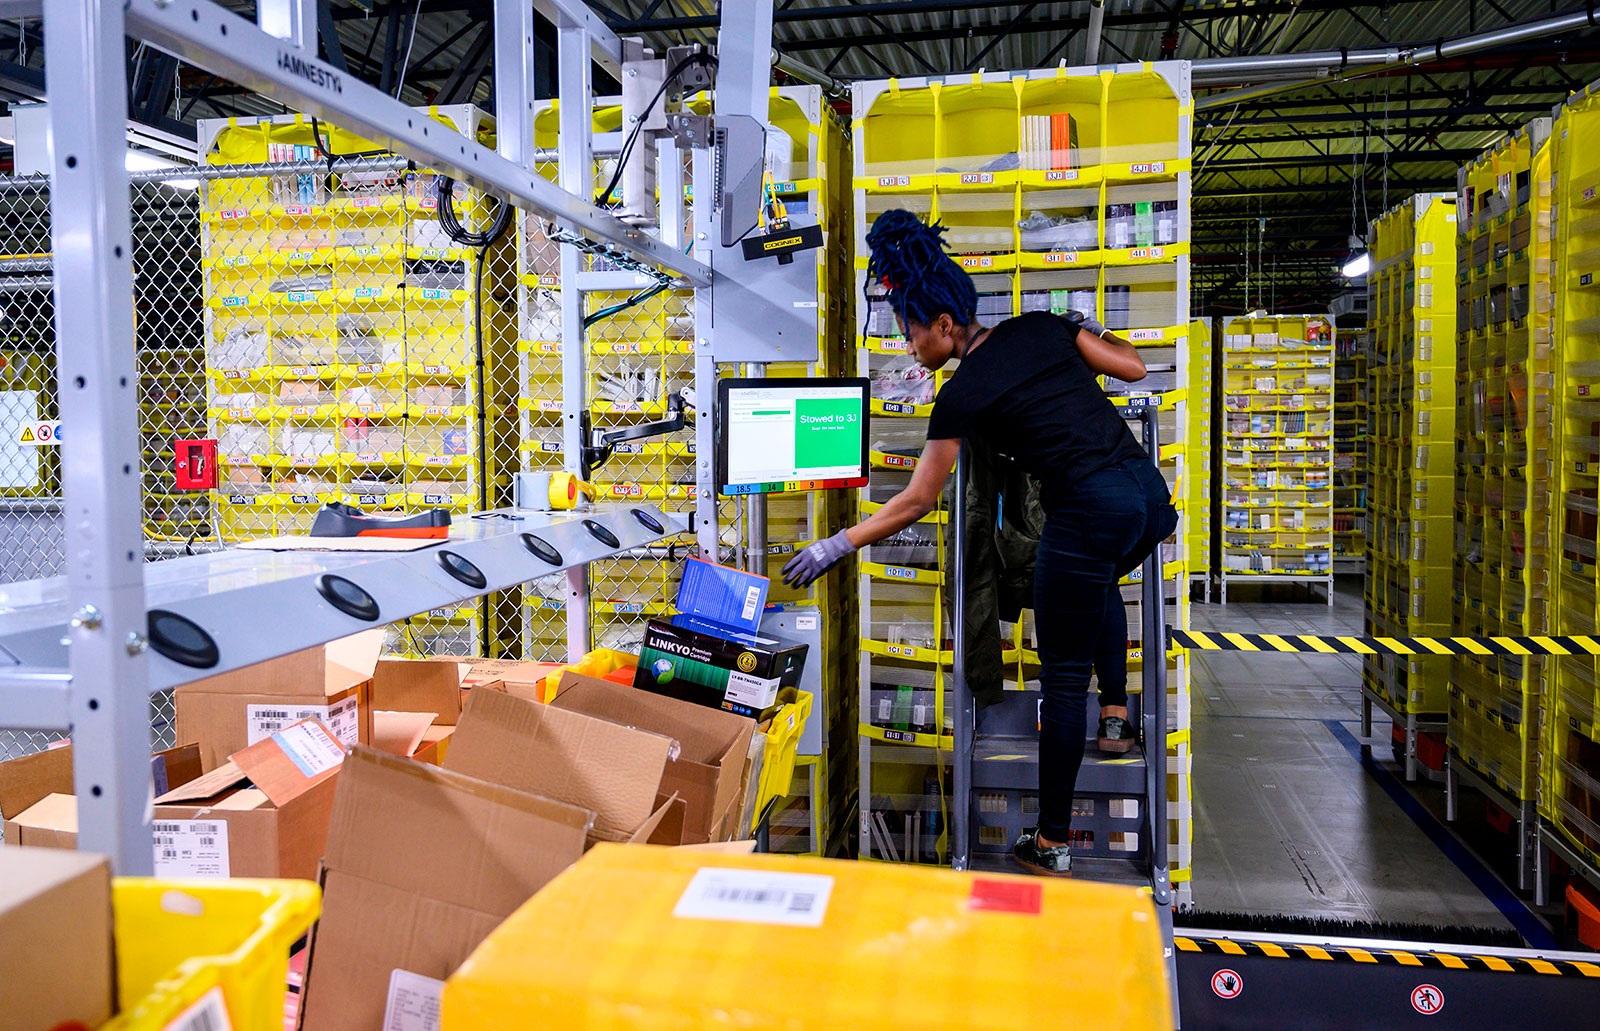 An employee works at the Amazon fulfillment center in Staten Island in 2019.